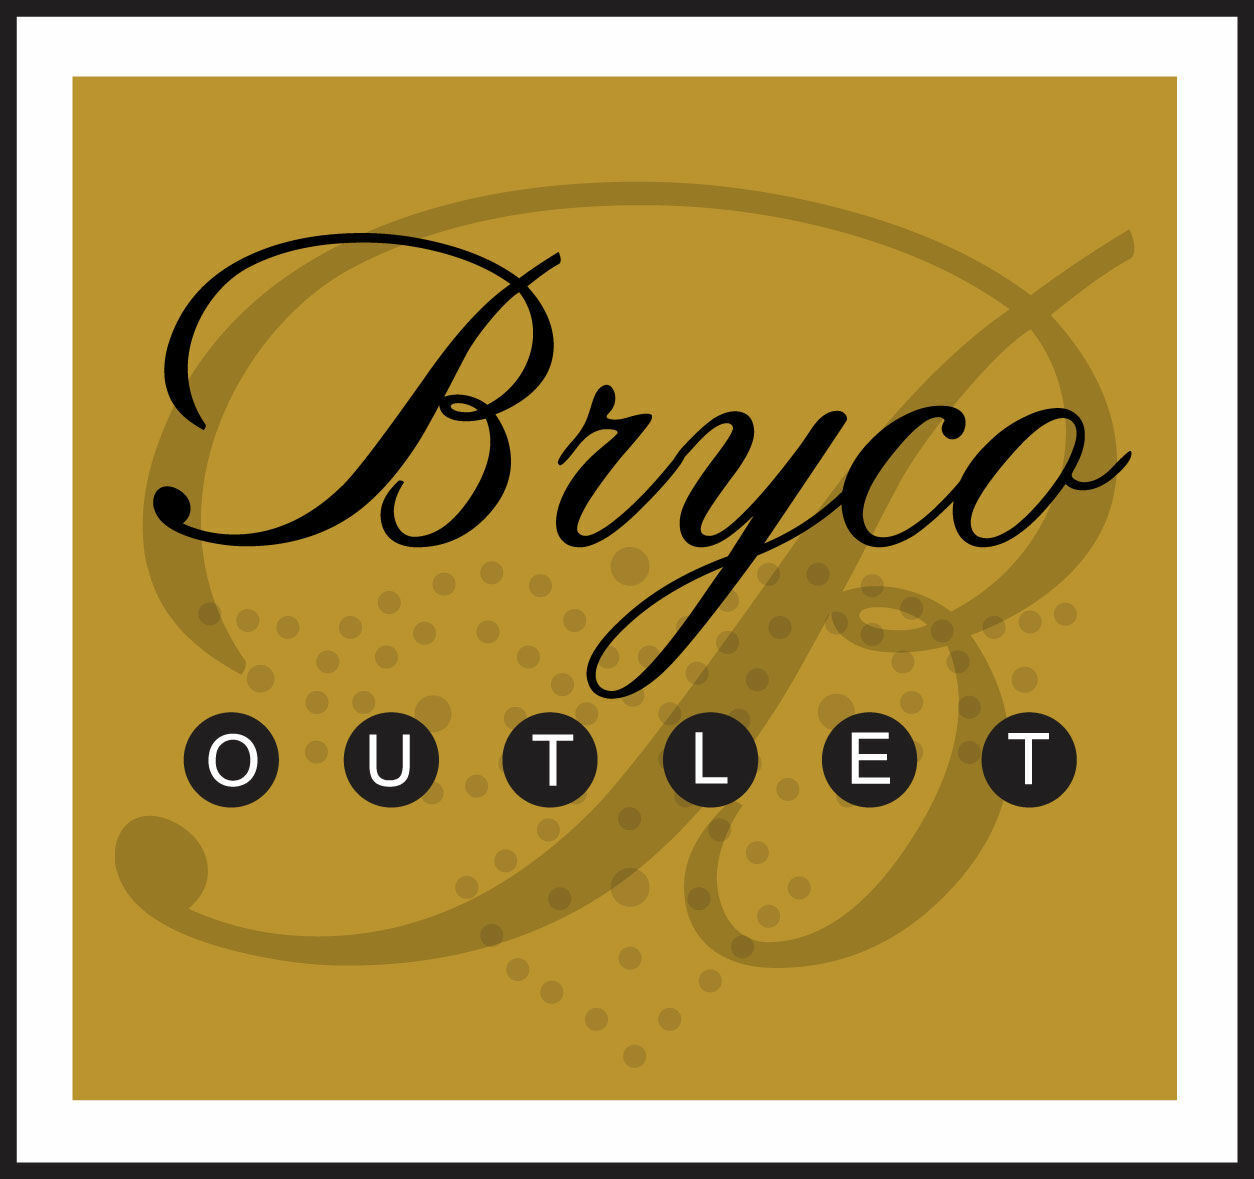 Bryco Outlet